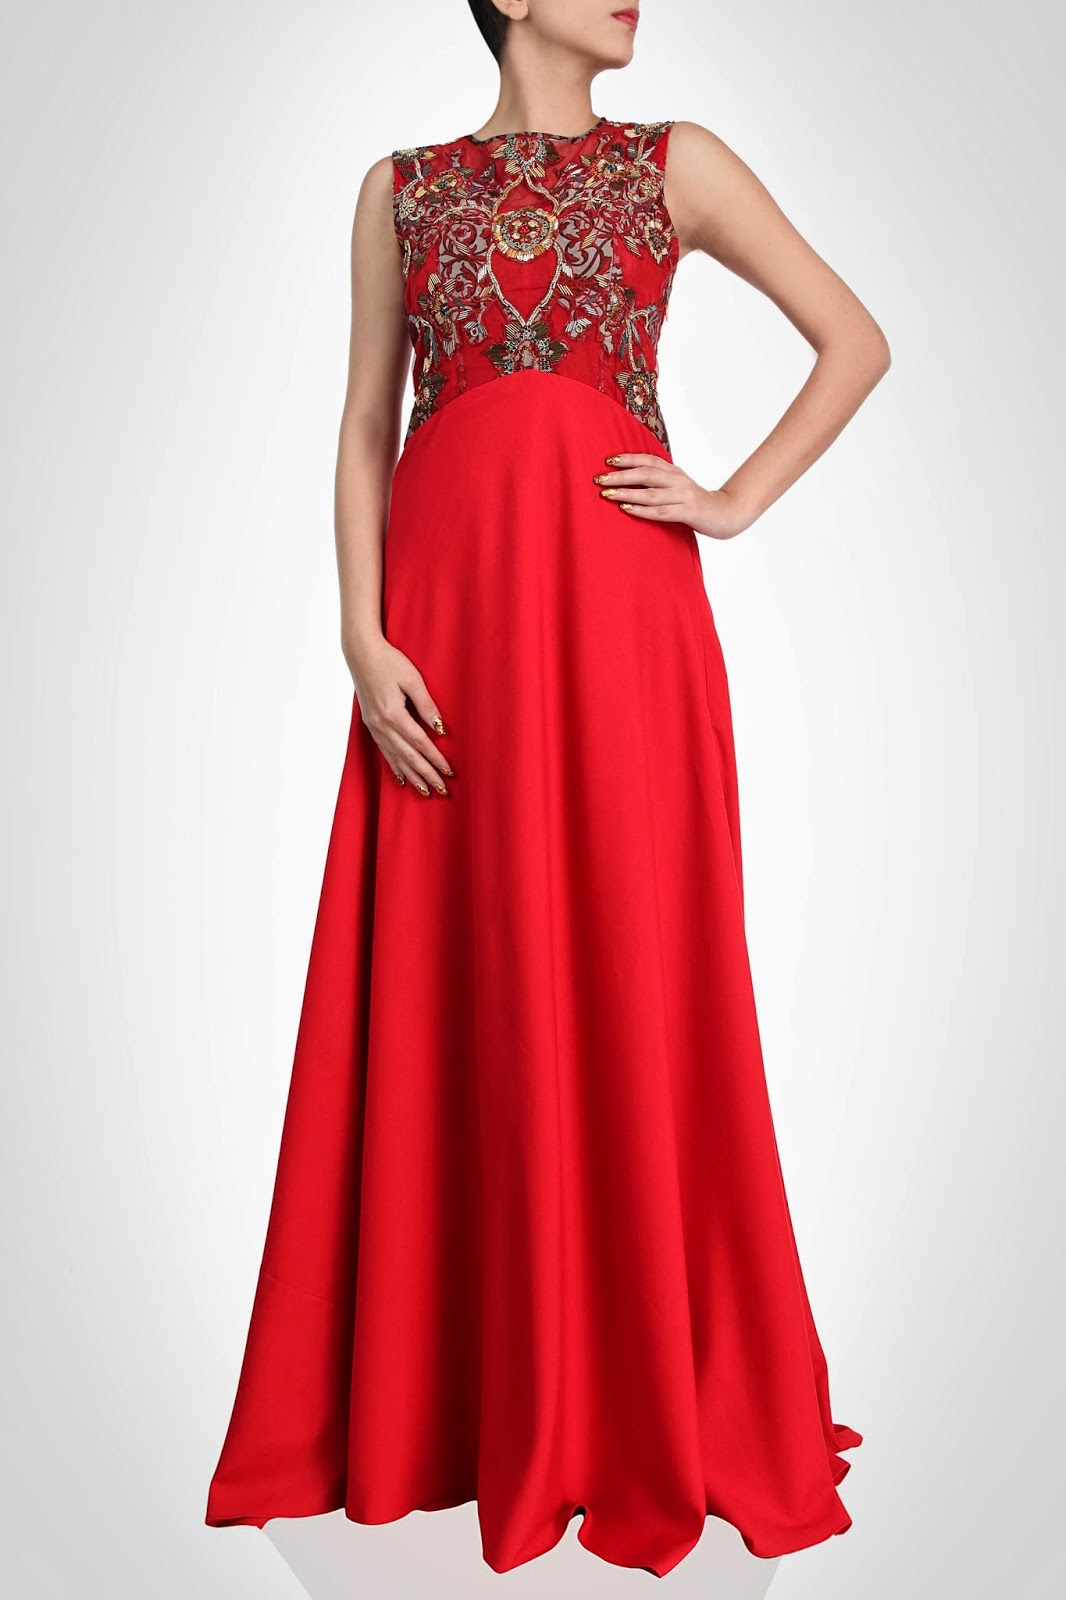 New Collection Of Designers Indian Style Maxi Dresses 2014 Latest Fashion